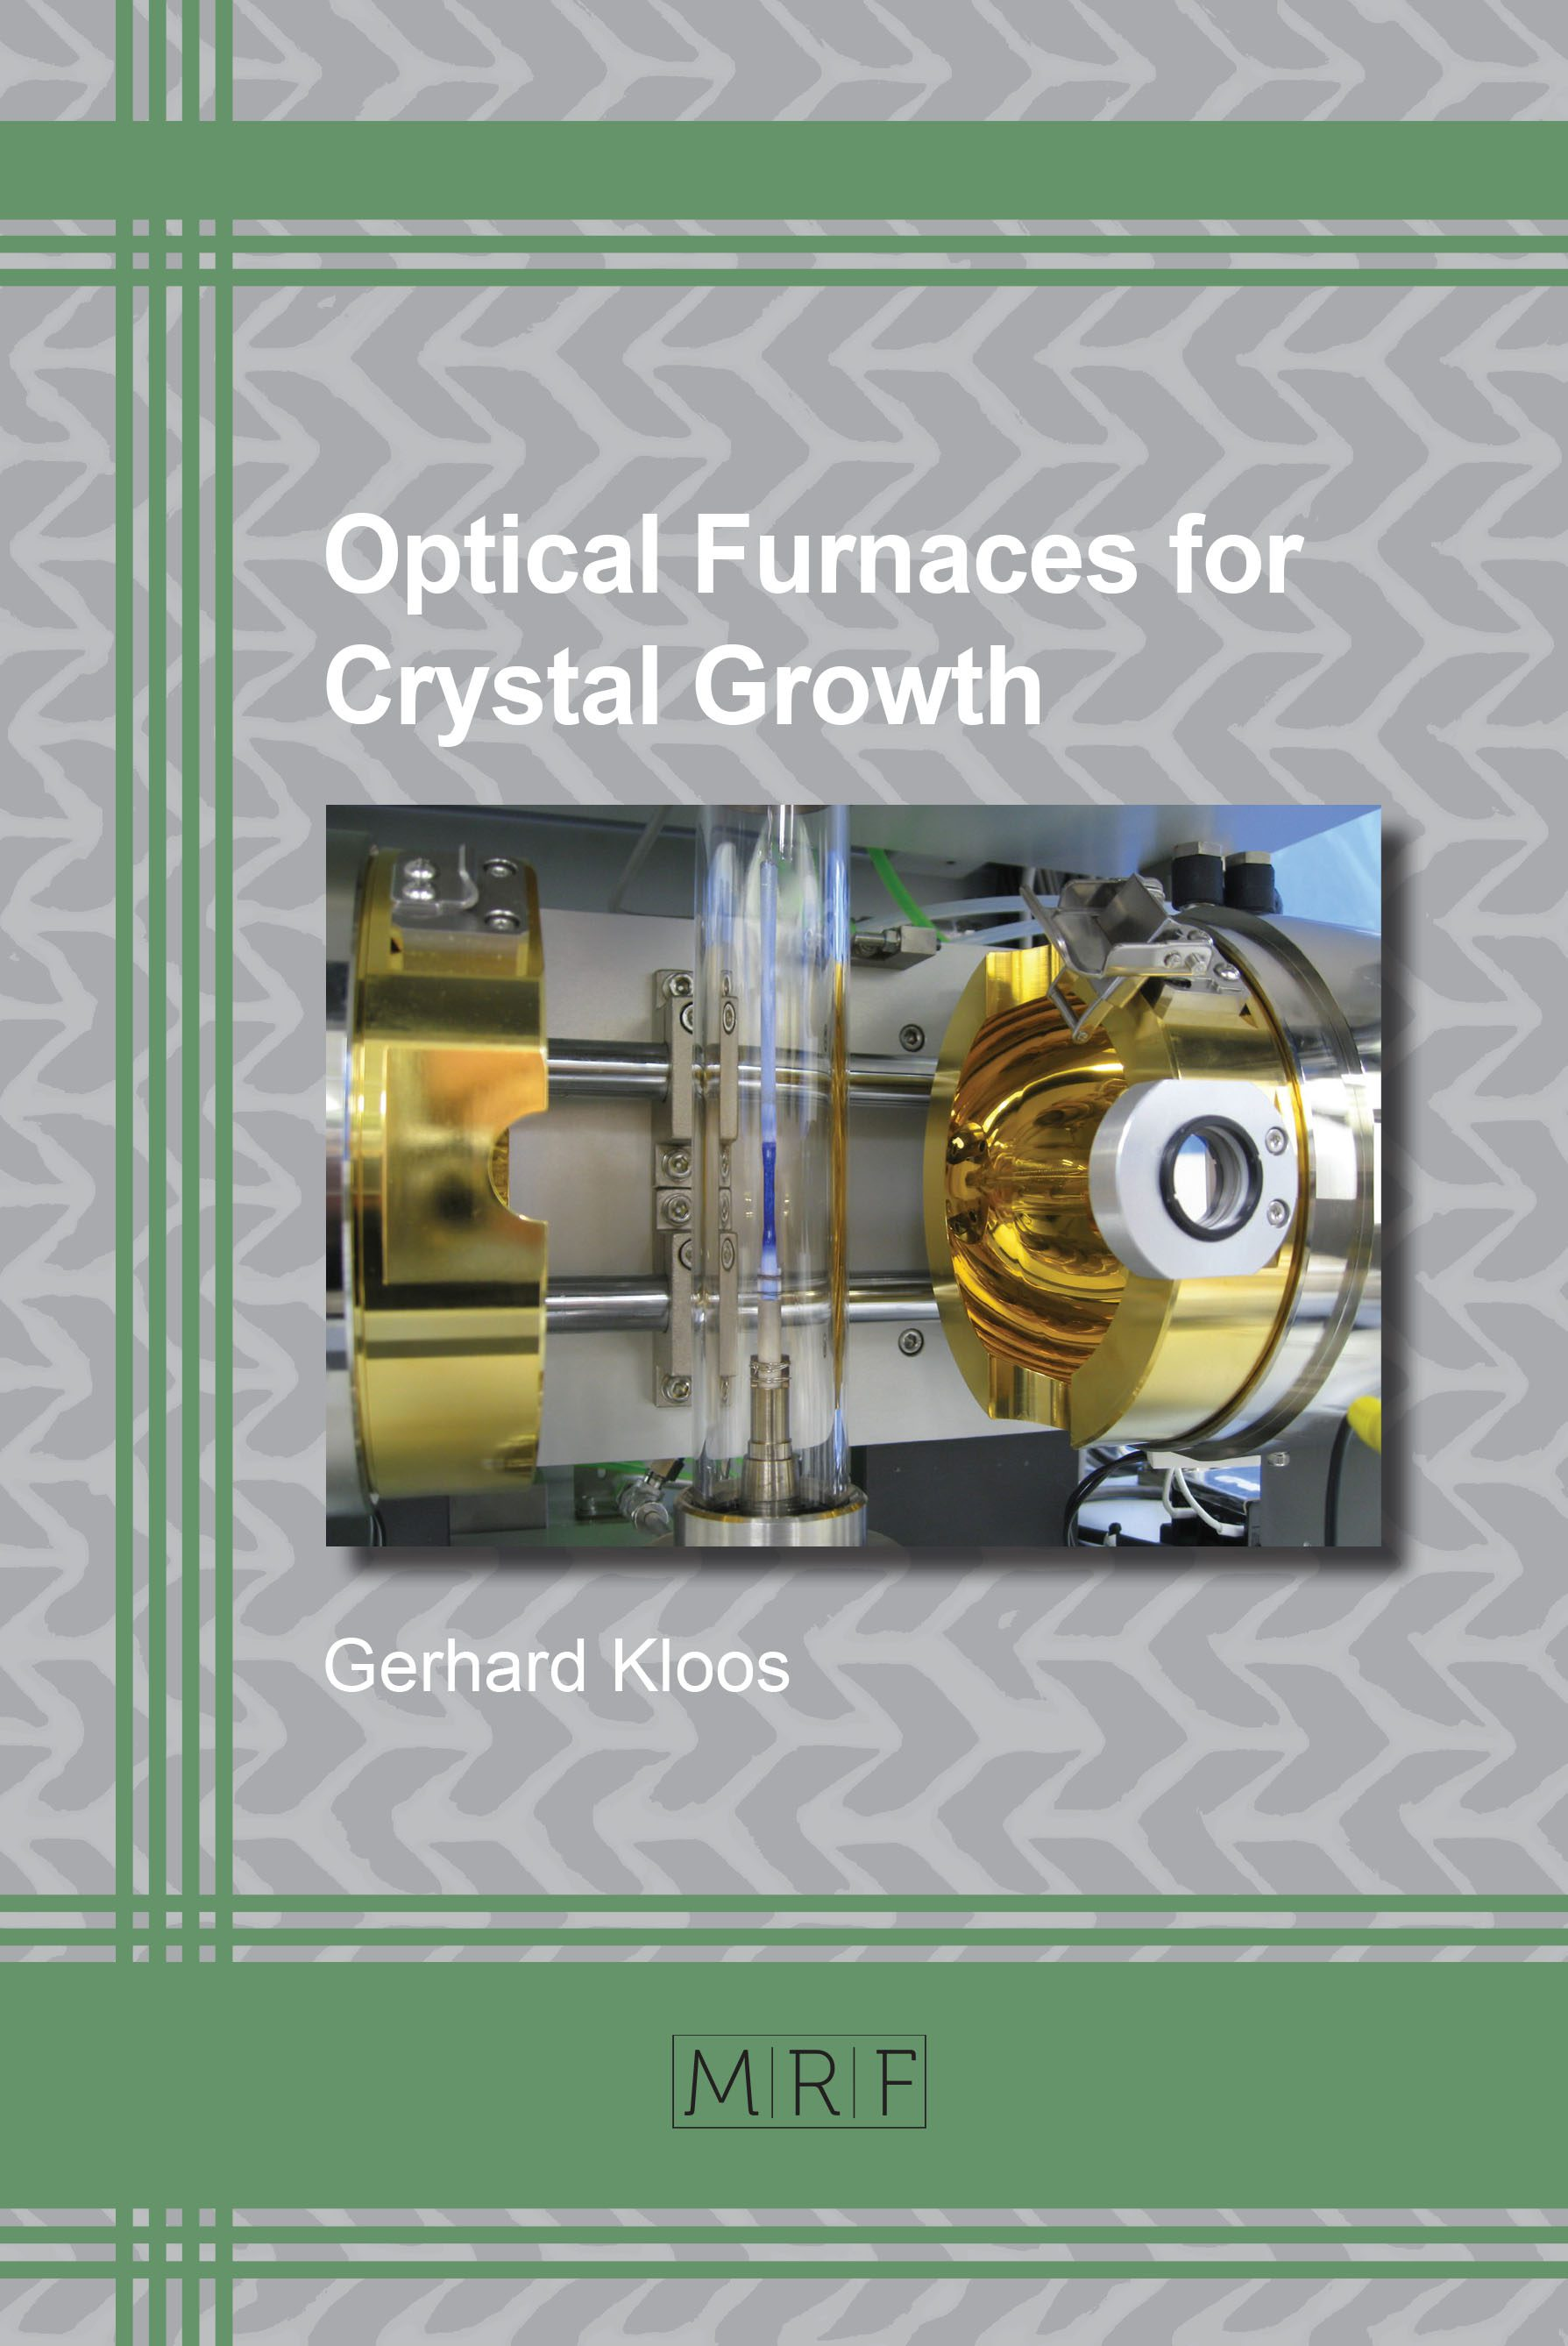 Optical Furnaces for Crystal Growth